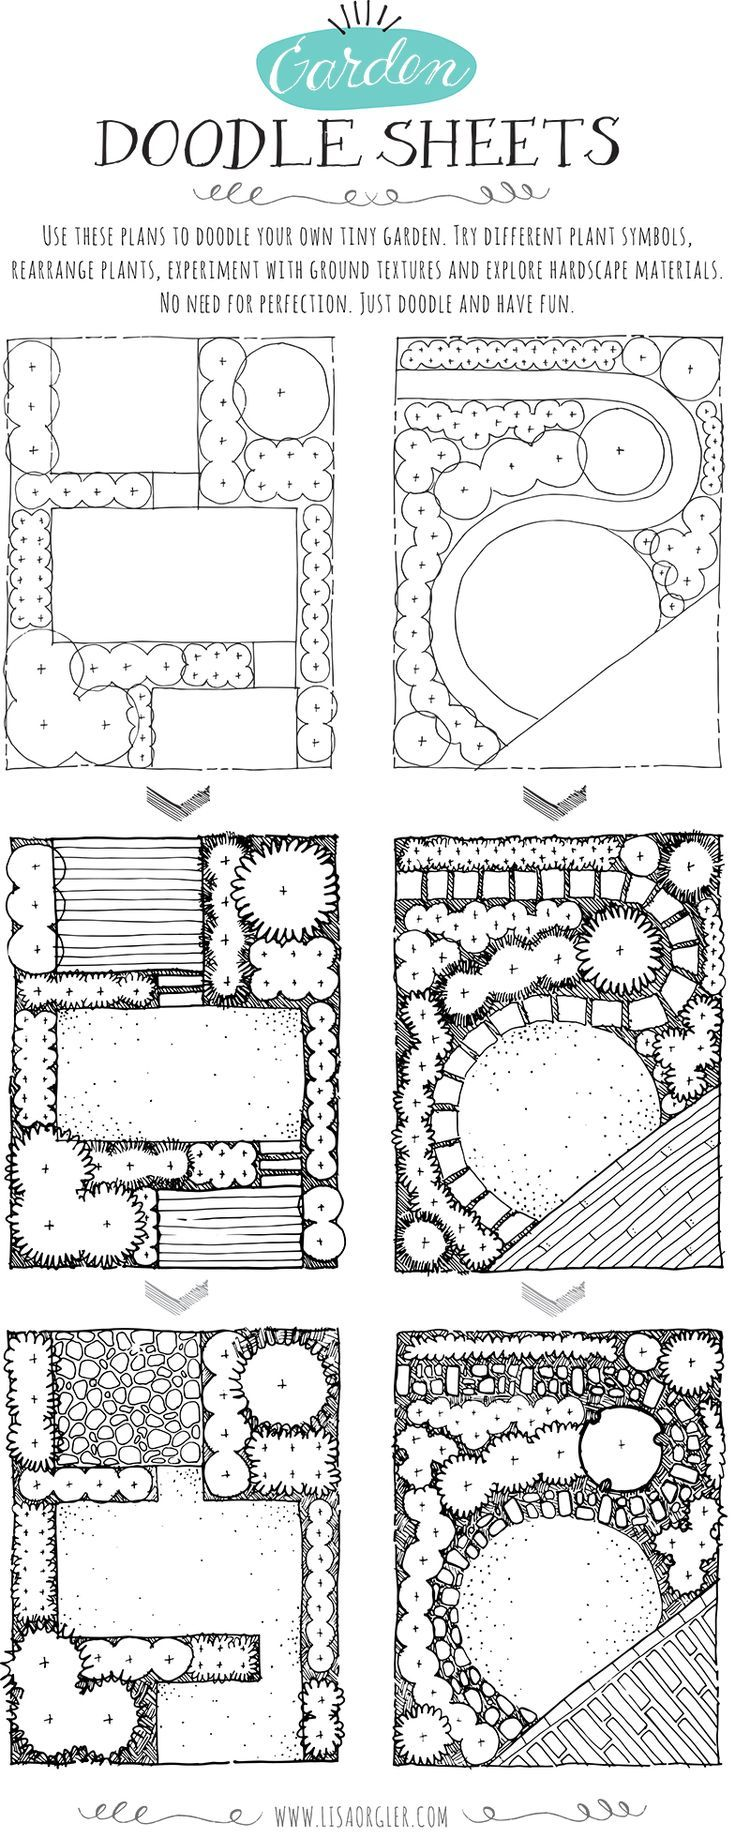 22 Don't Sideline Your Side Yard Free garden doodle sheets. Click on image in post to download a set. Free garden doodle sheets. Click on image in post to download a set.